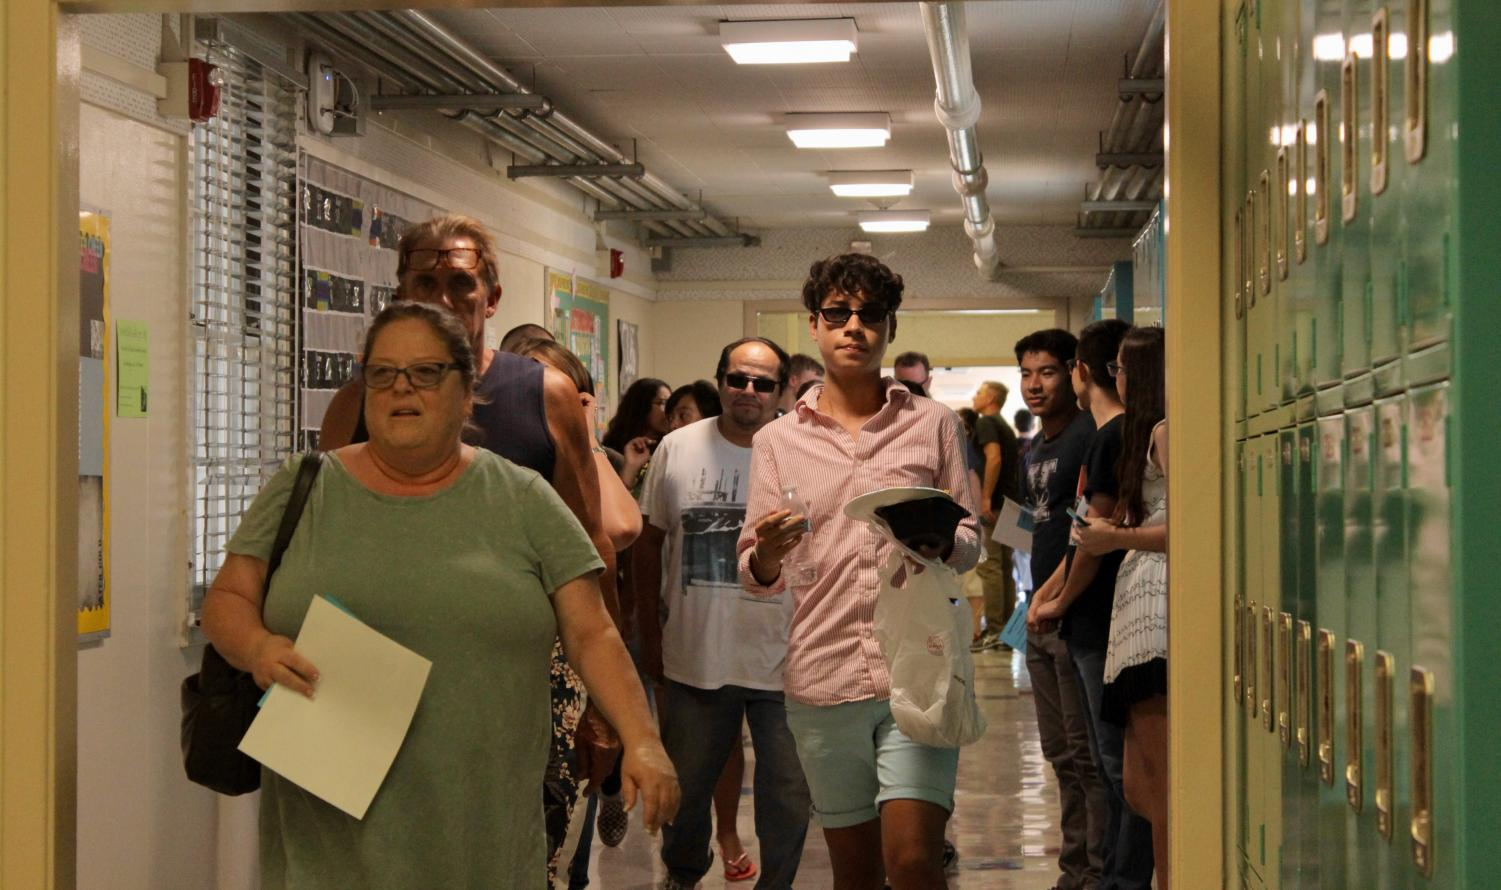 Students+and+parents+fill+the+hallway+during+Back+to+School+Night+on+Sept.+12.+